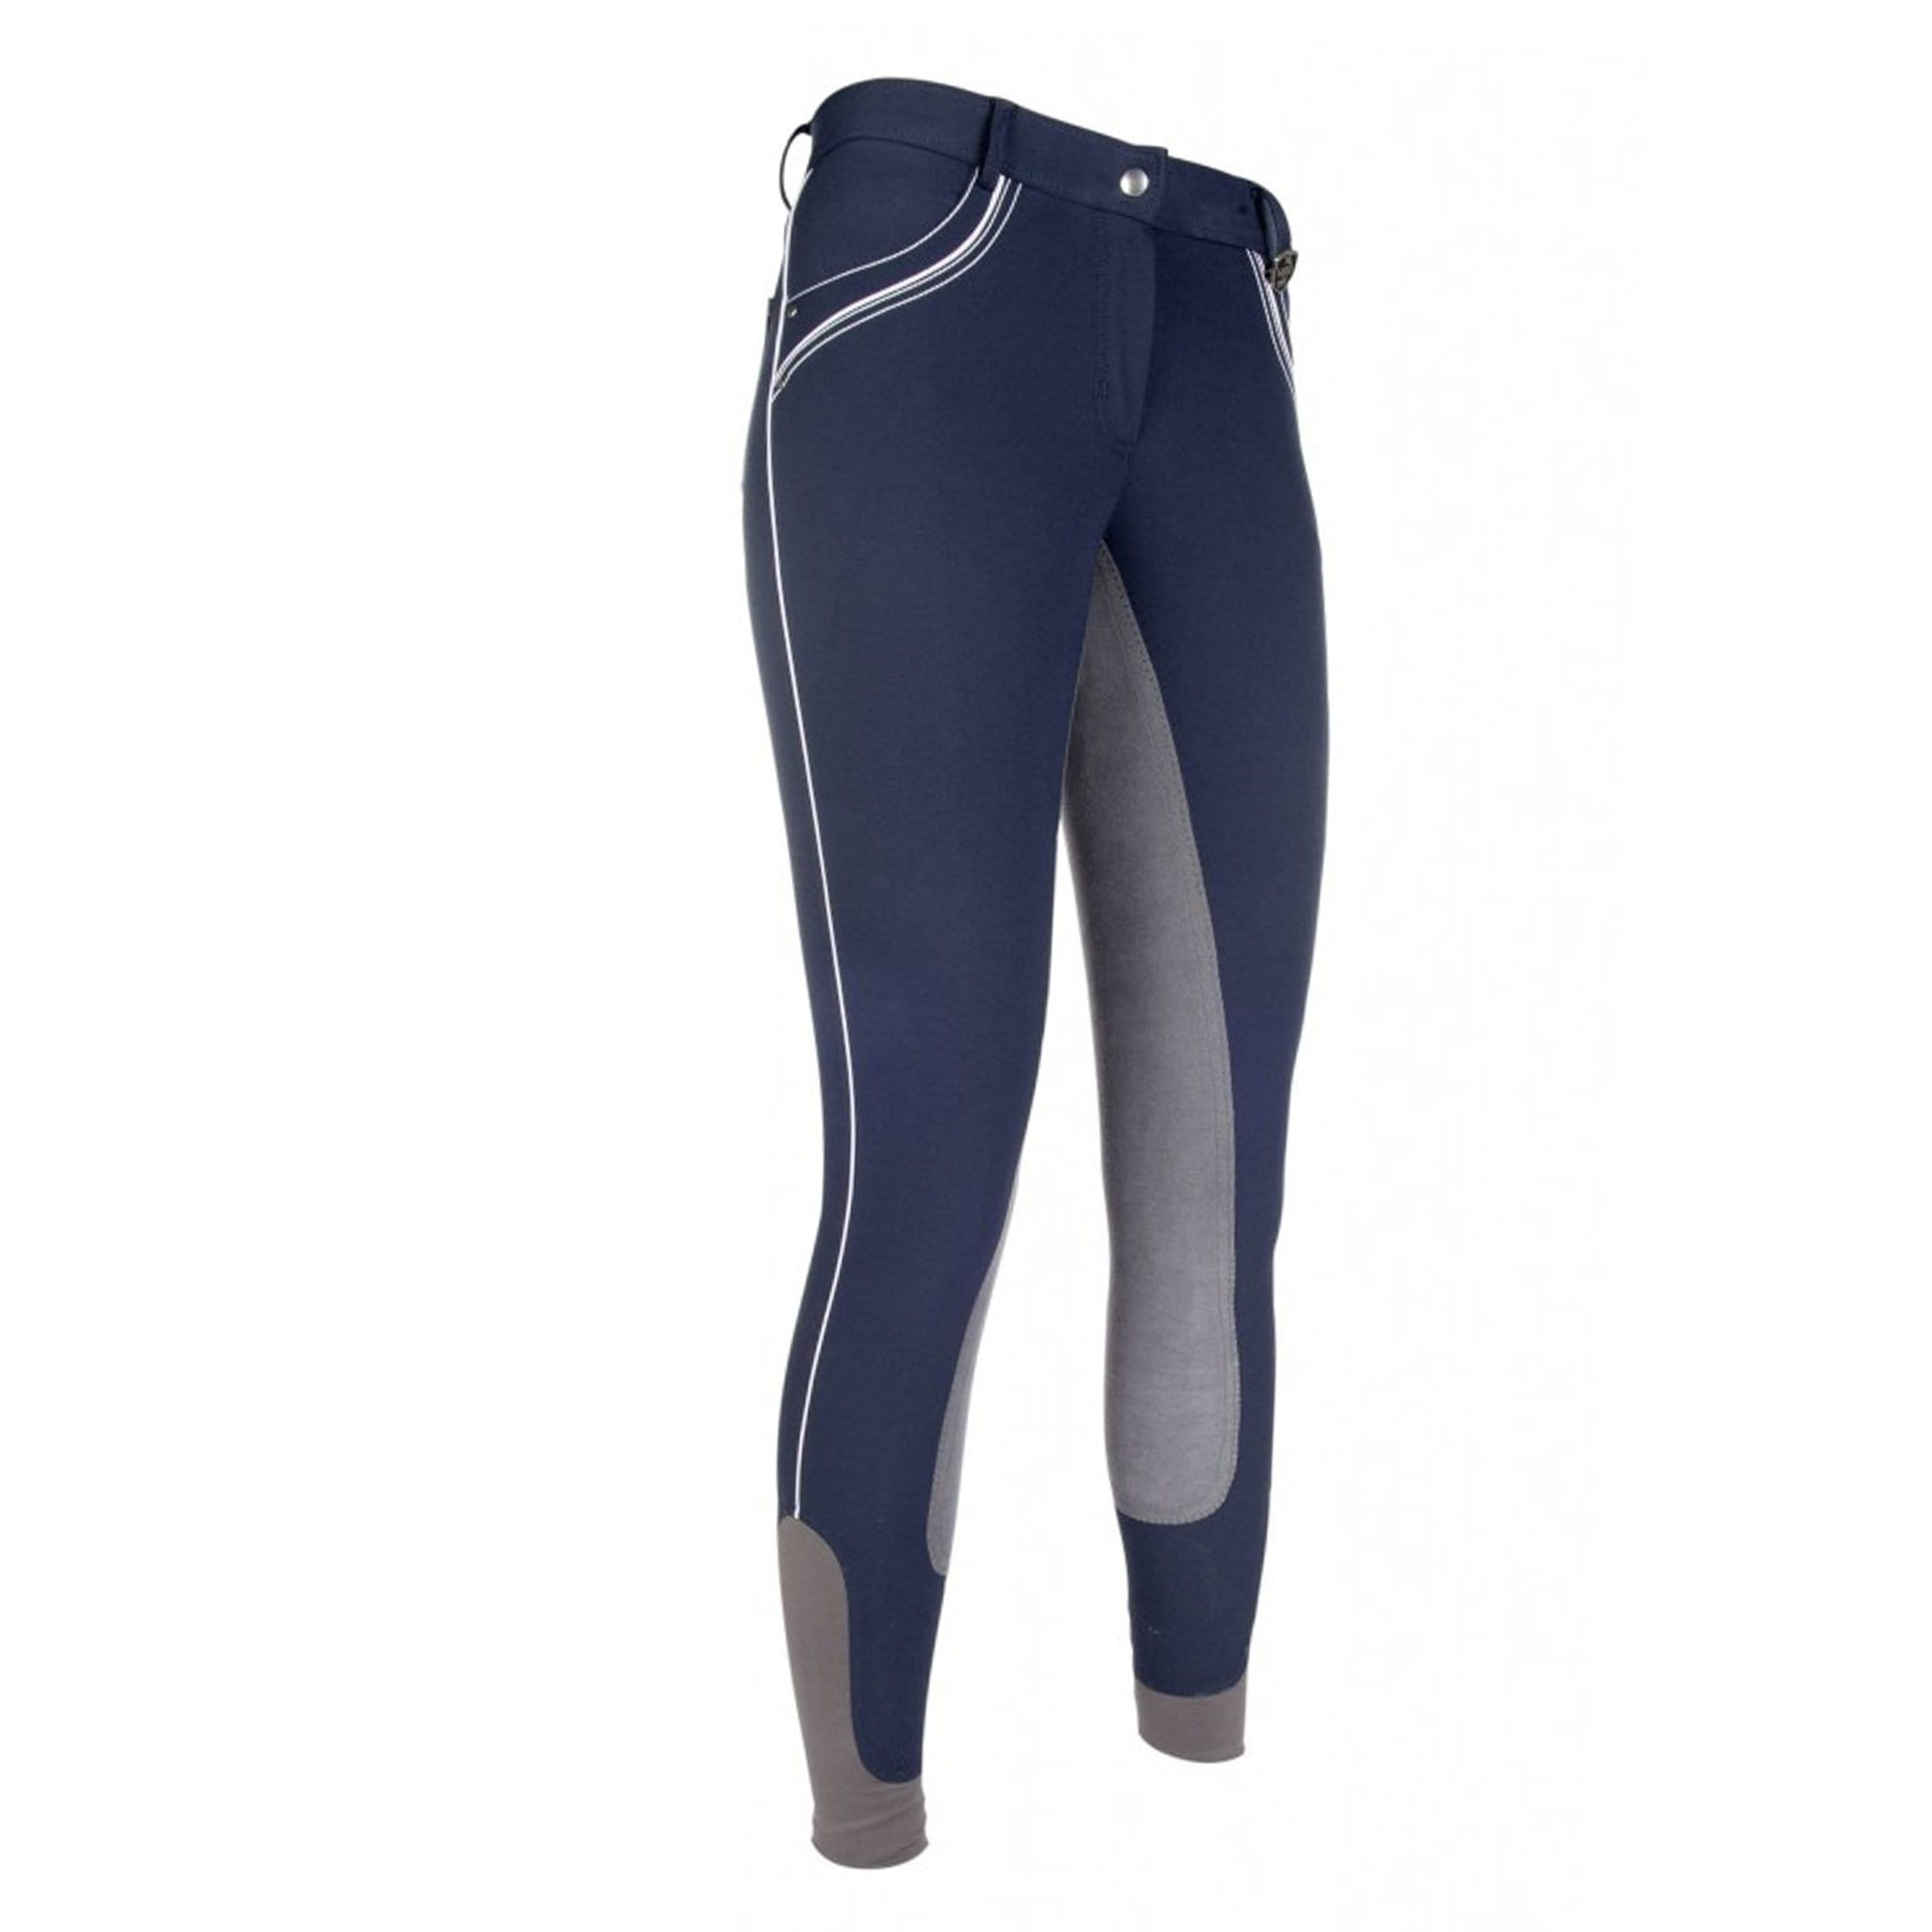 HKM London Alos Full Seat Breeches 9179 Deep Blue and Grey Front